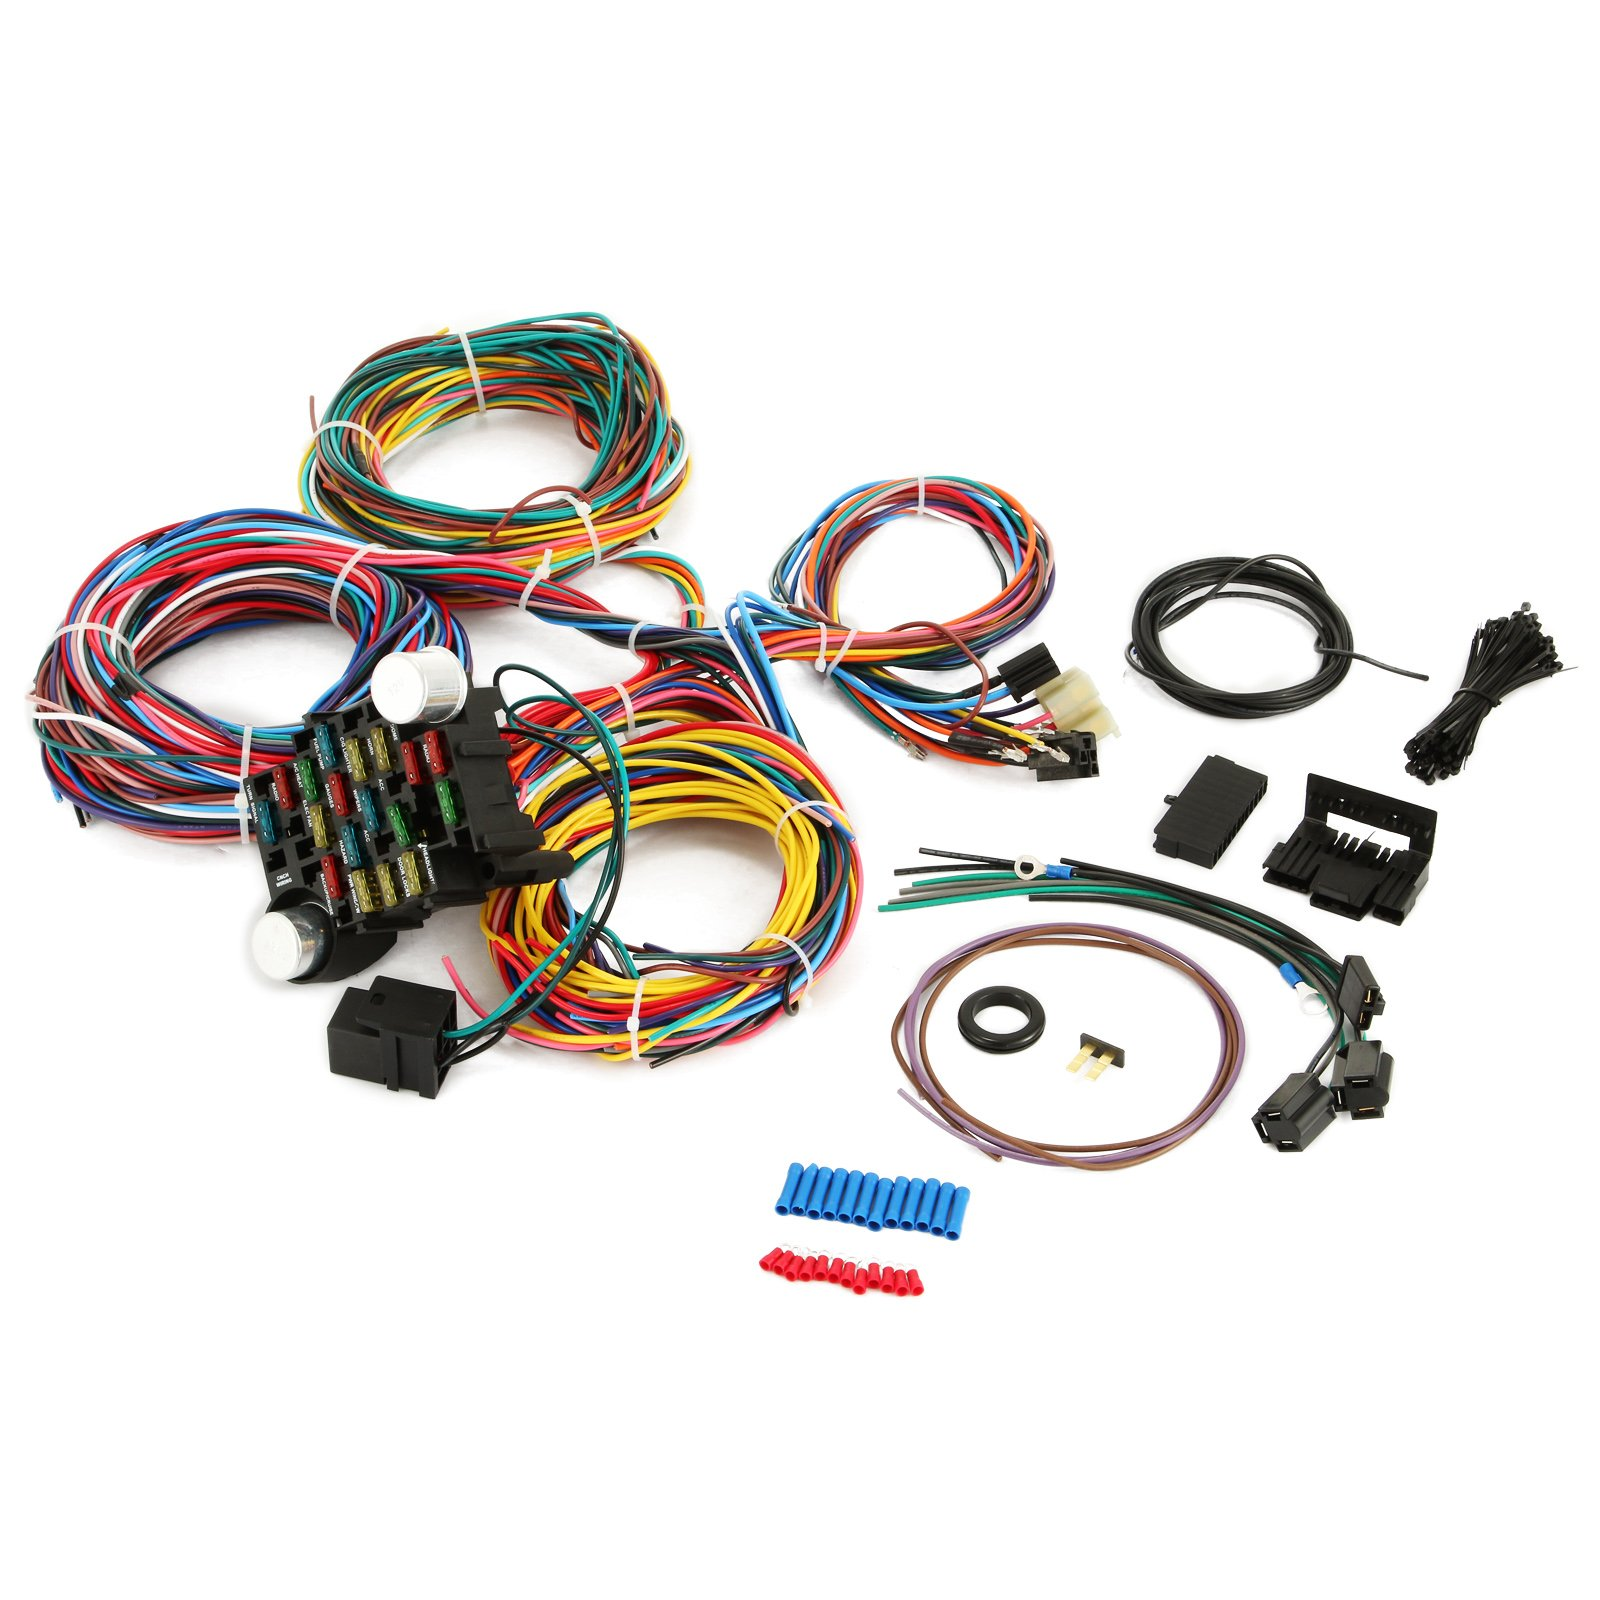 Mophorn 21 Circuit Ez Wiring Harness Long Wires Ford Kit Standard Color For Chevy Mopar Hotrods Chrysler Universal